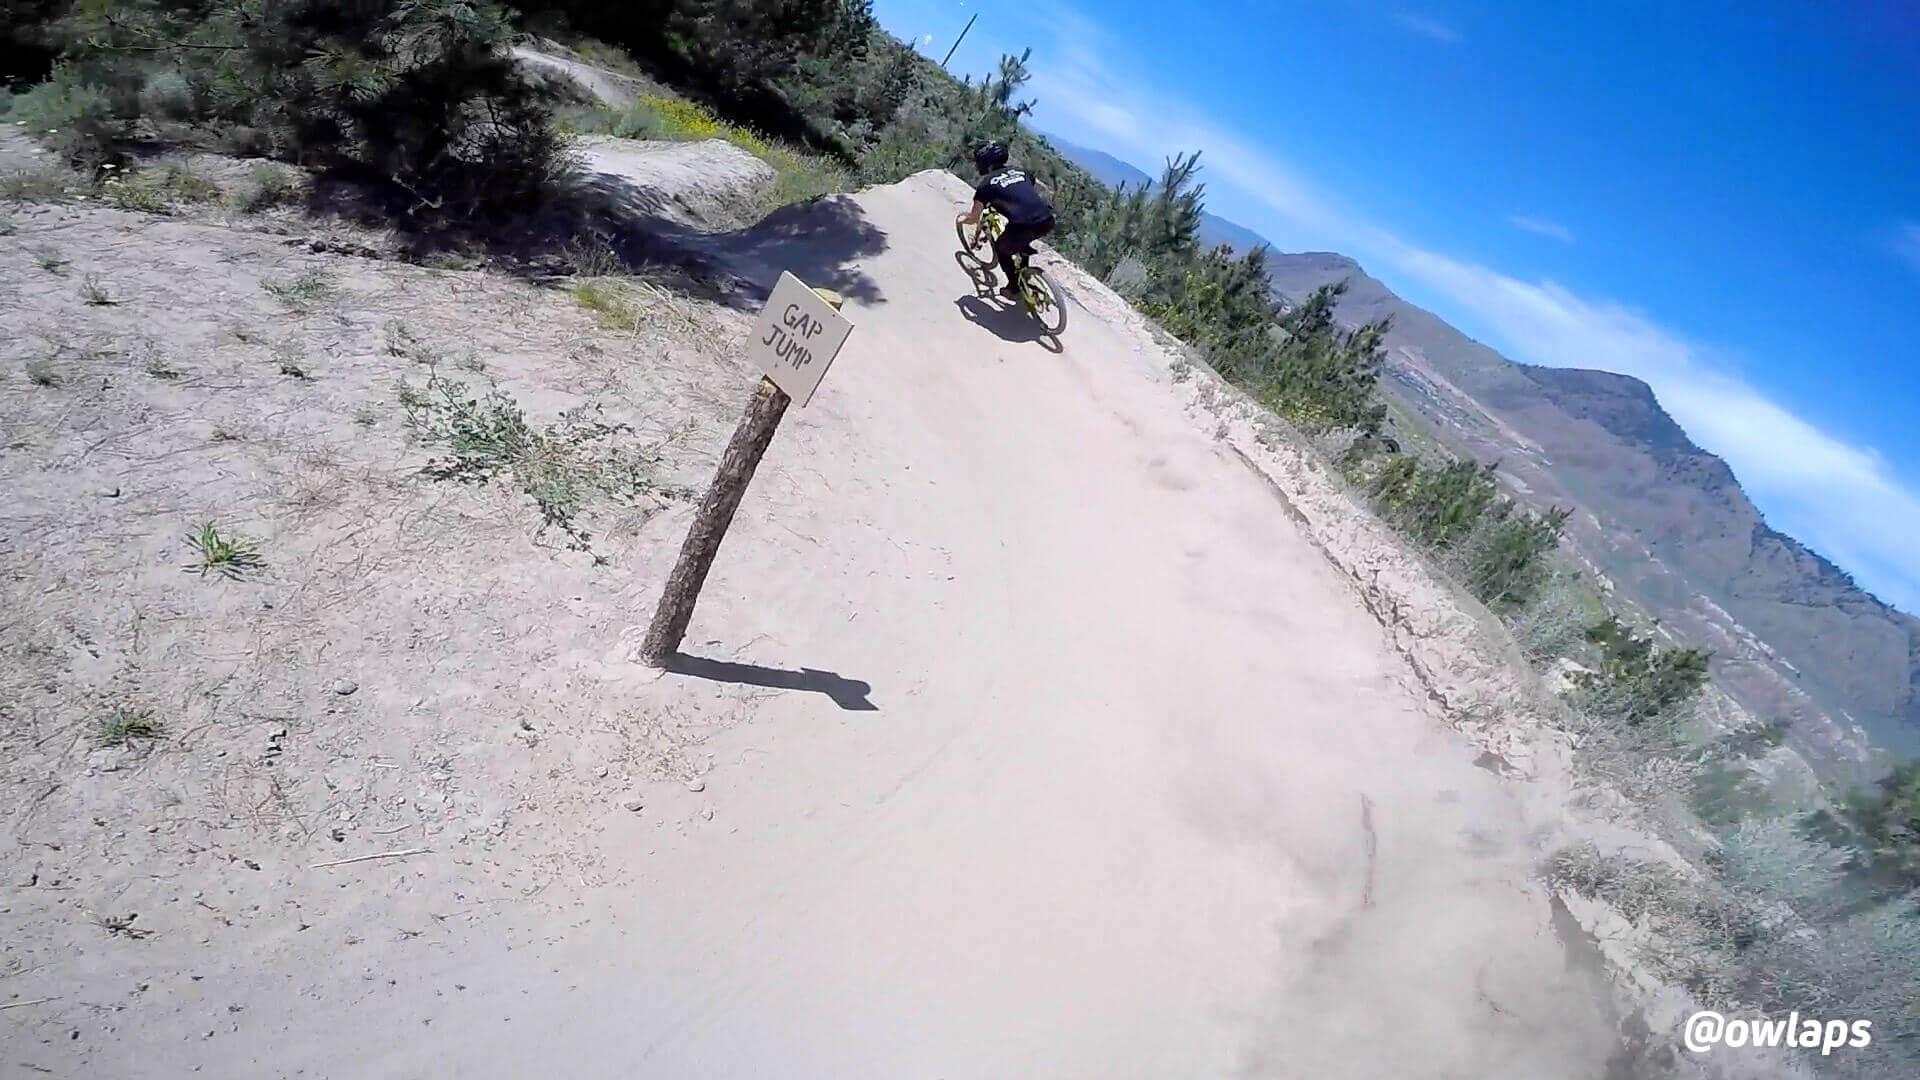 wrangler-kamloops-bike-ranch-canada-owlaps-HD-4